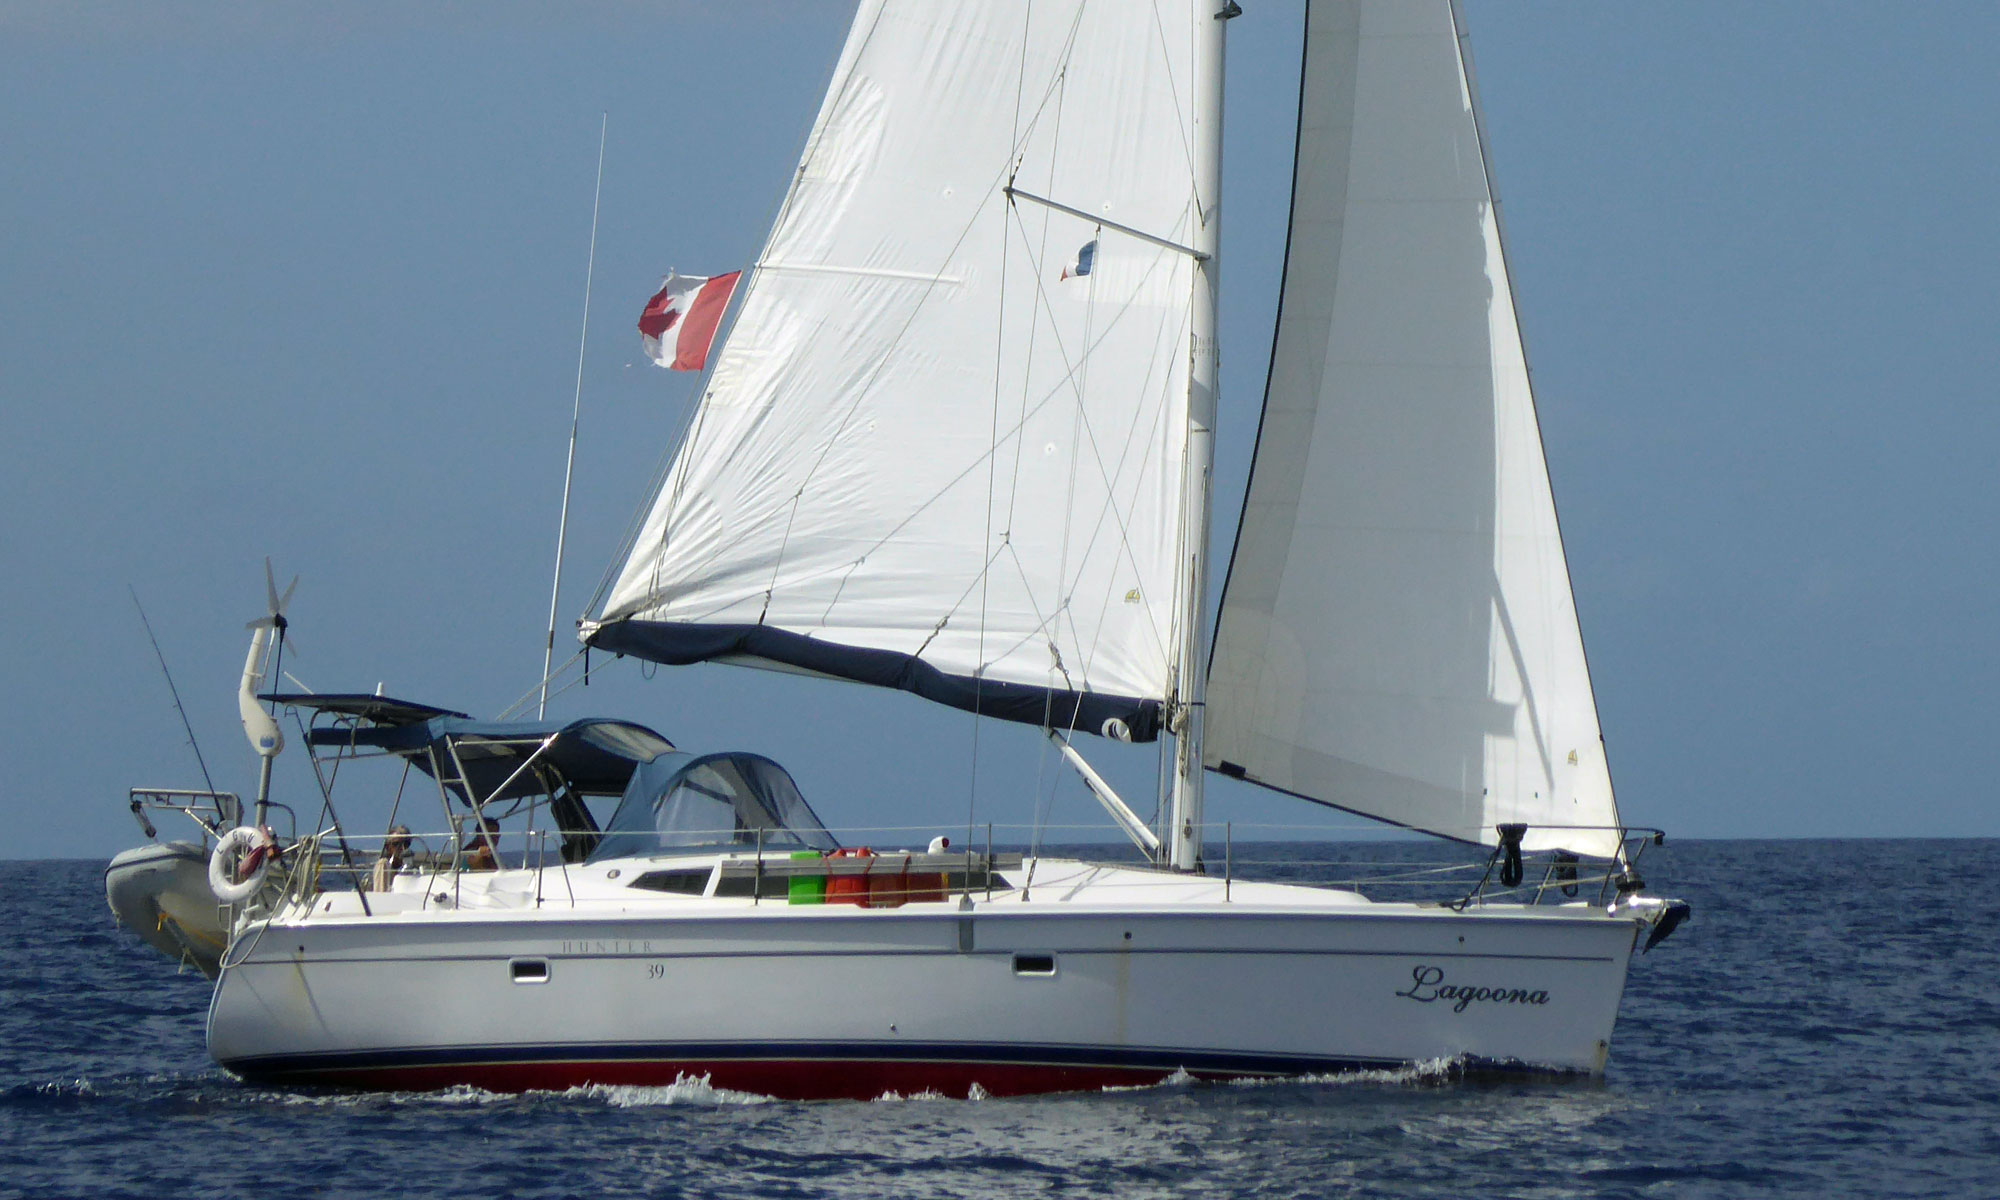 A Hunter 39 under full sail